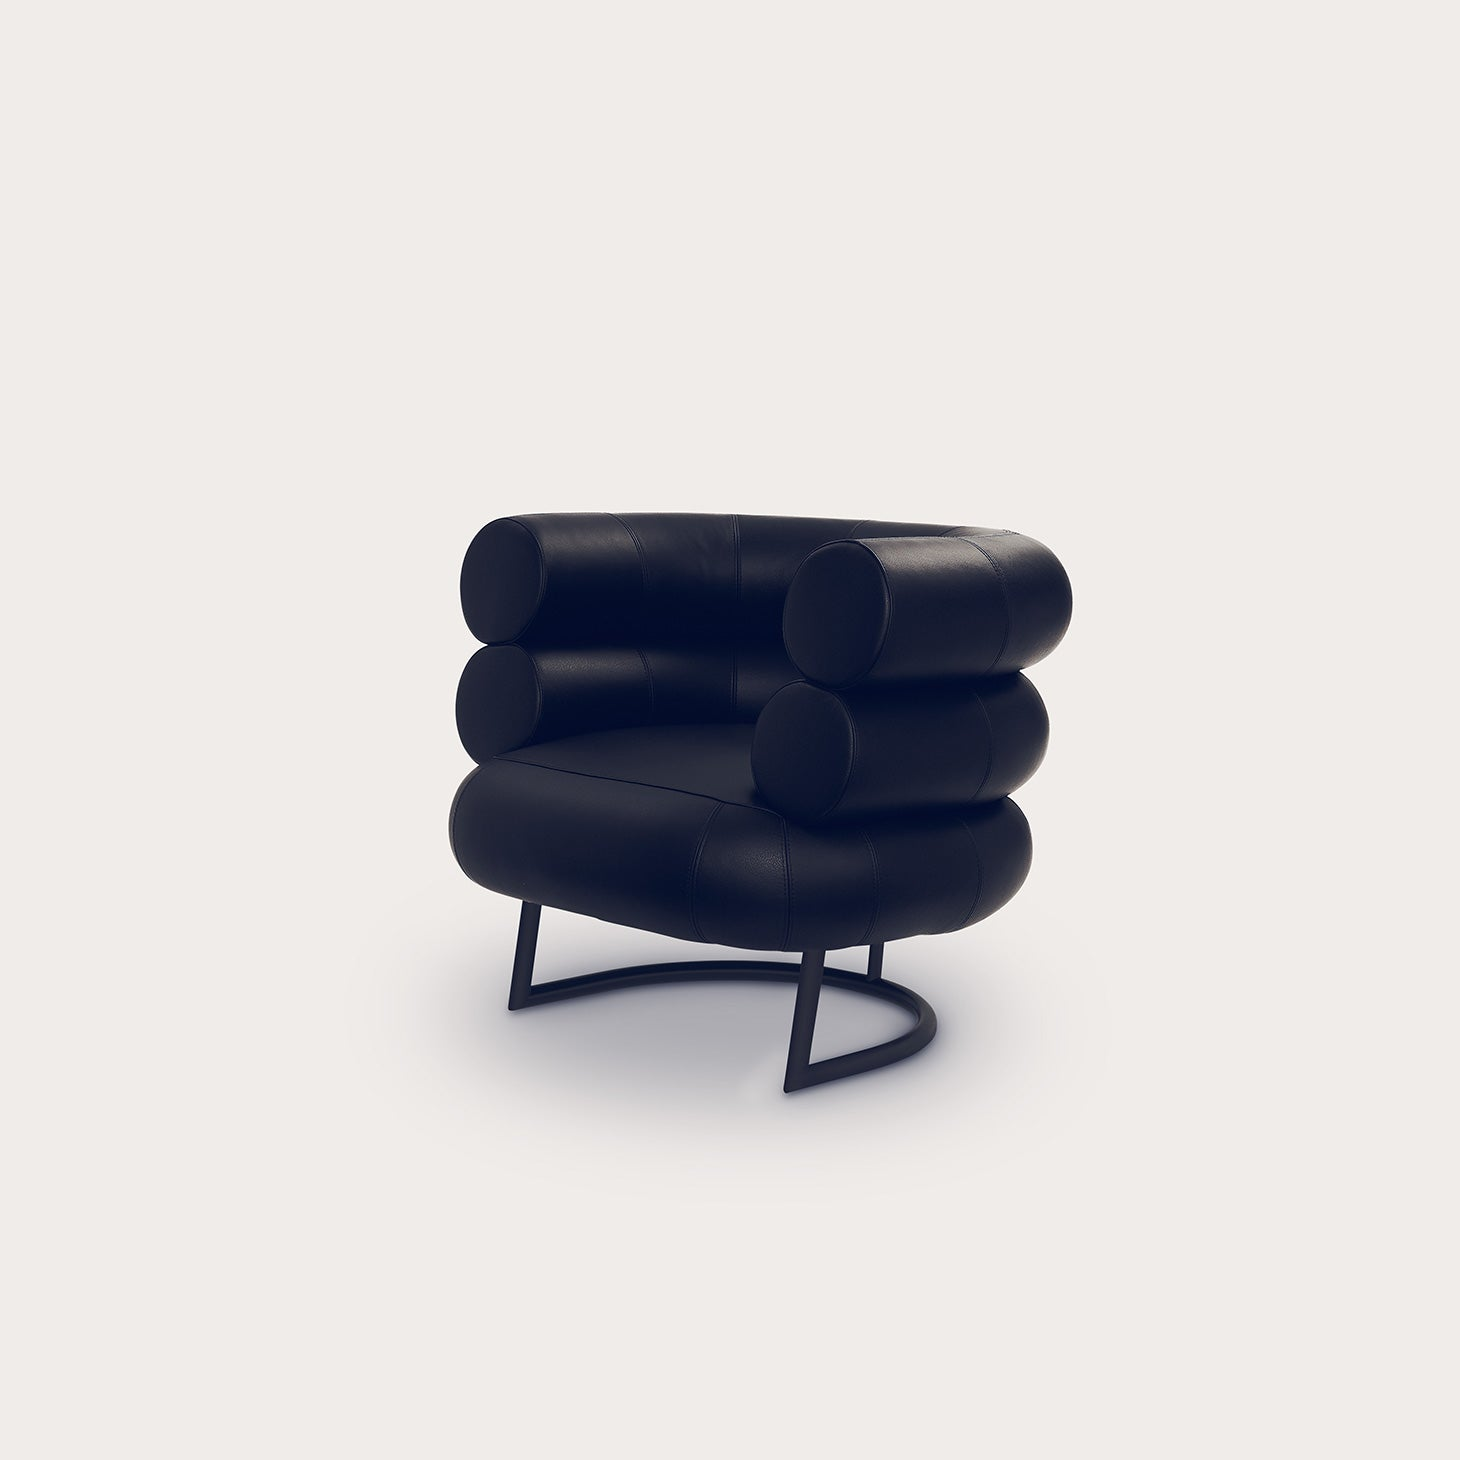 Bibendum Seating Eileen Gray Designer Furniture Sku: 001-120-10035